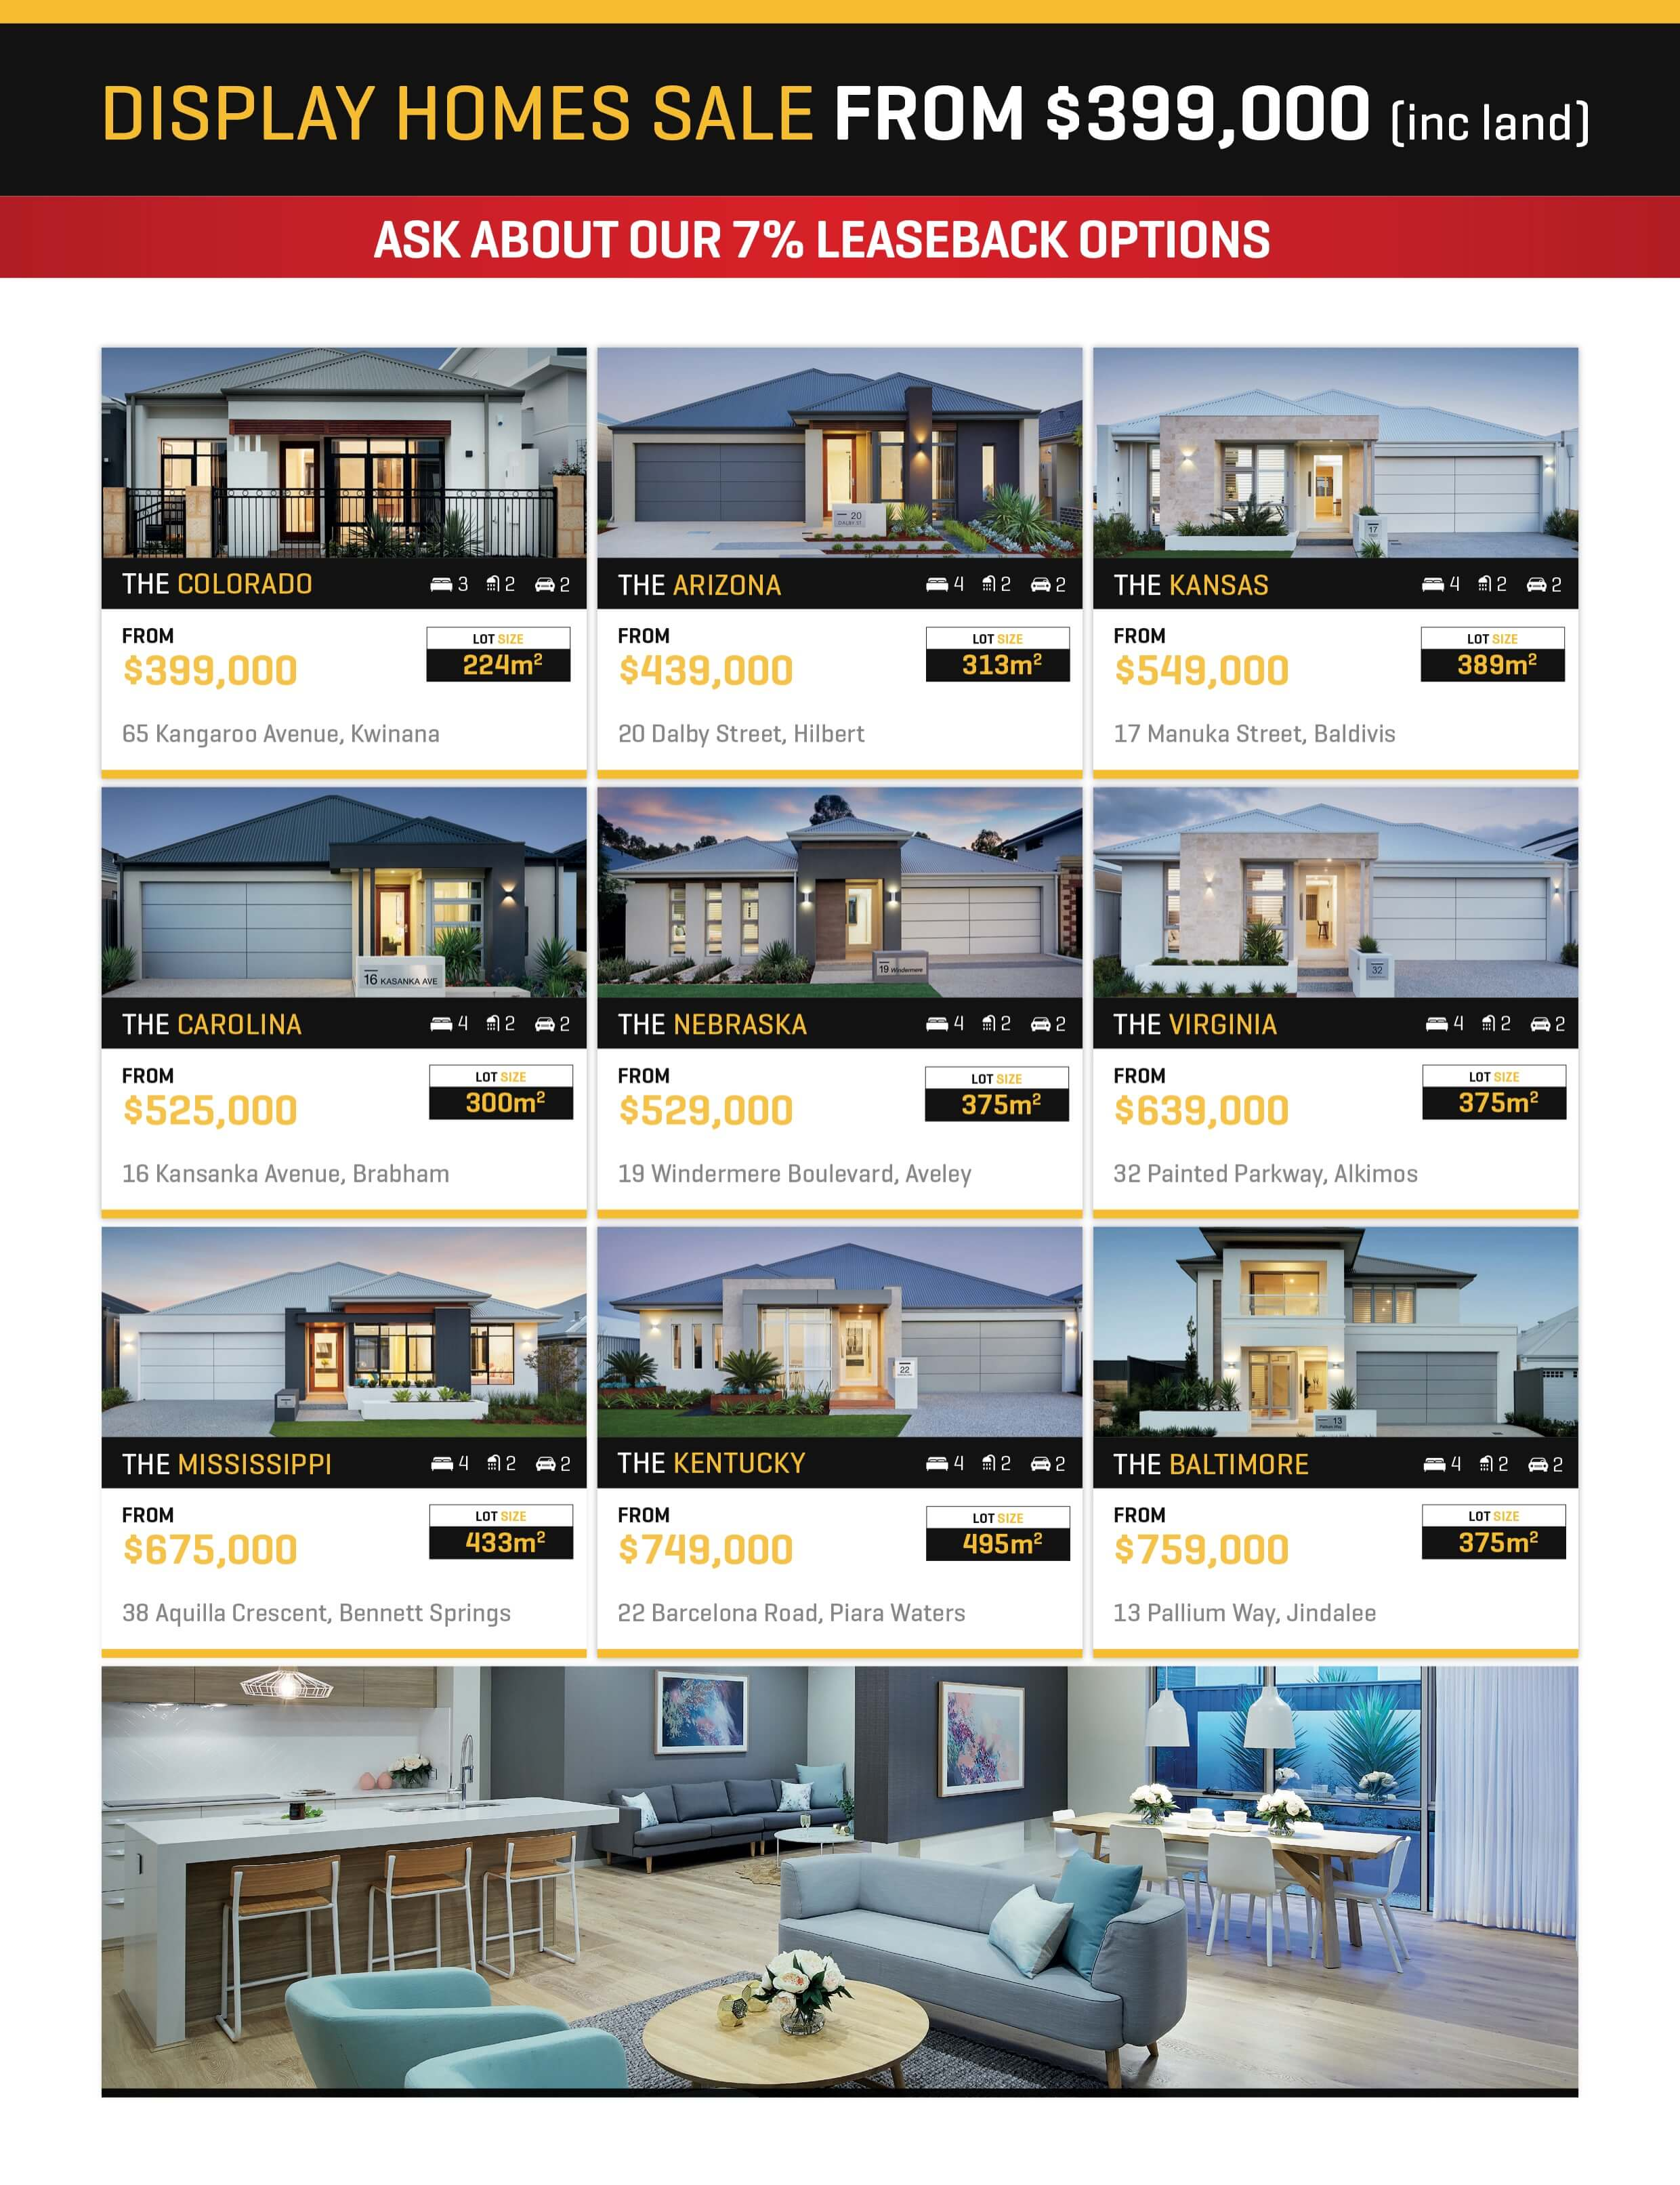 Display Homes For Sale